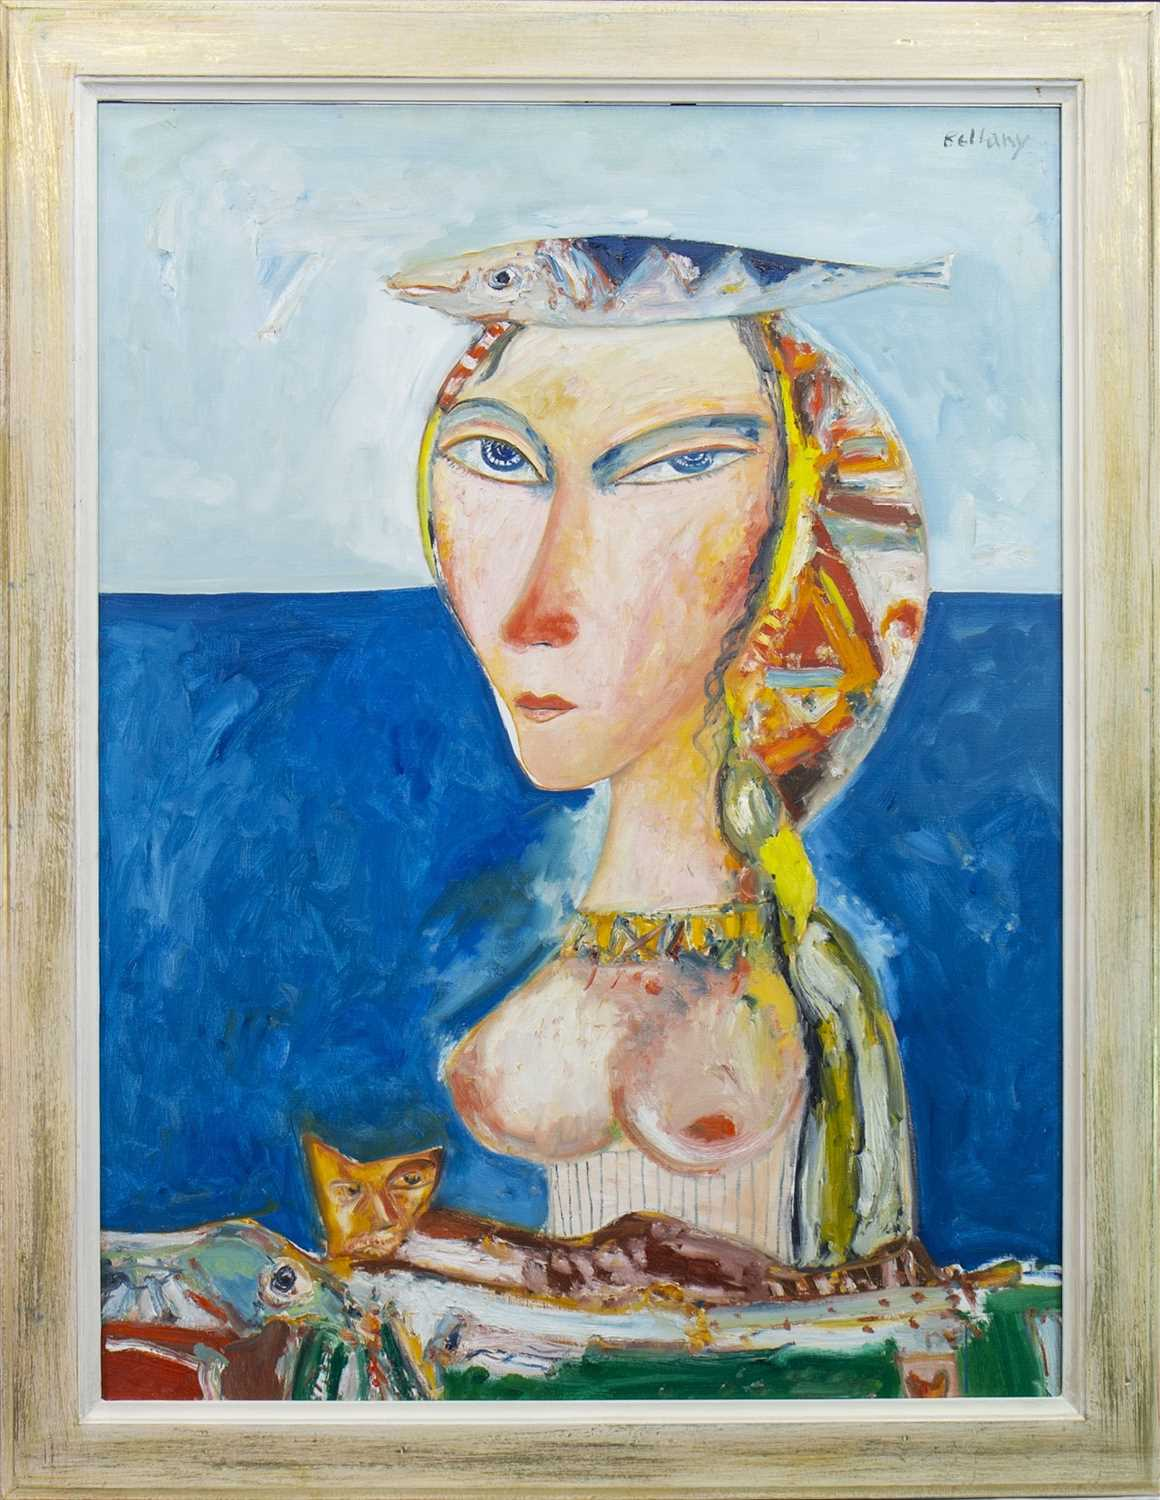 Lot 567 - WOMAN OF THE SEA, AN OIL BY JOHN BELLANY